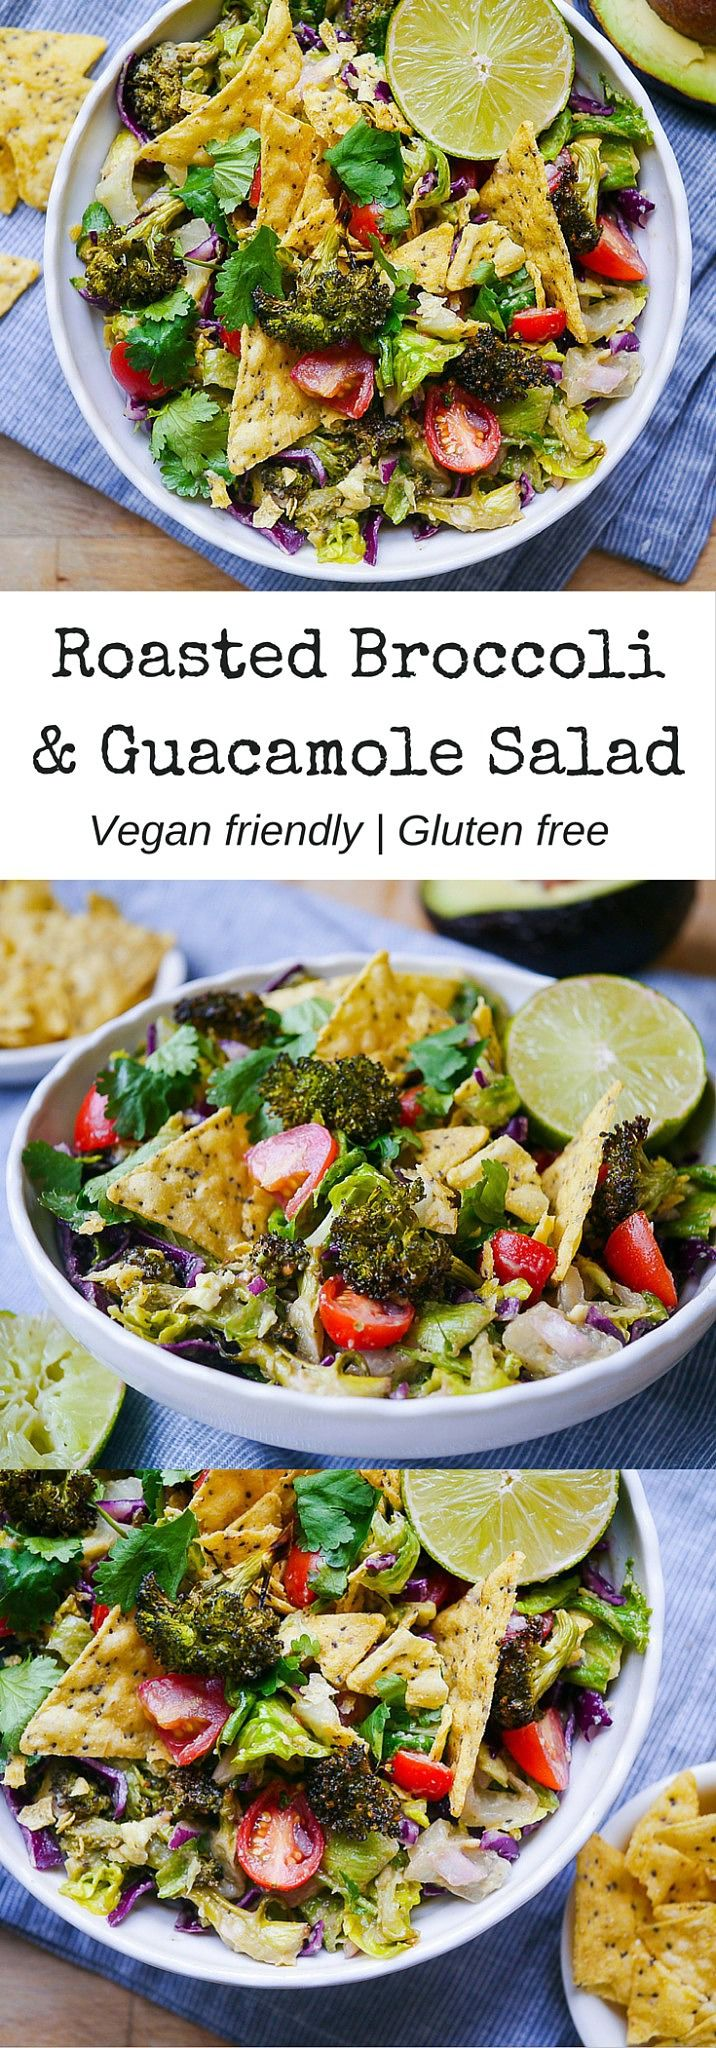 Roasted Broccoli & Guacamole Salad | When you want a huge bowl of guacamole…